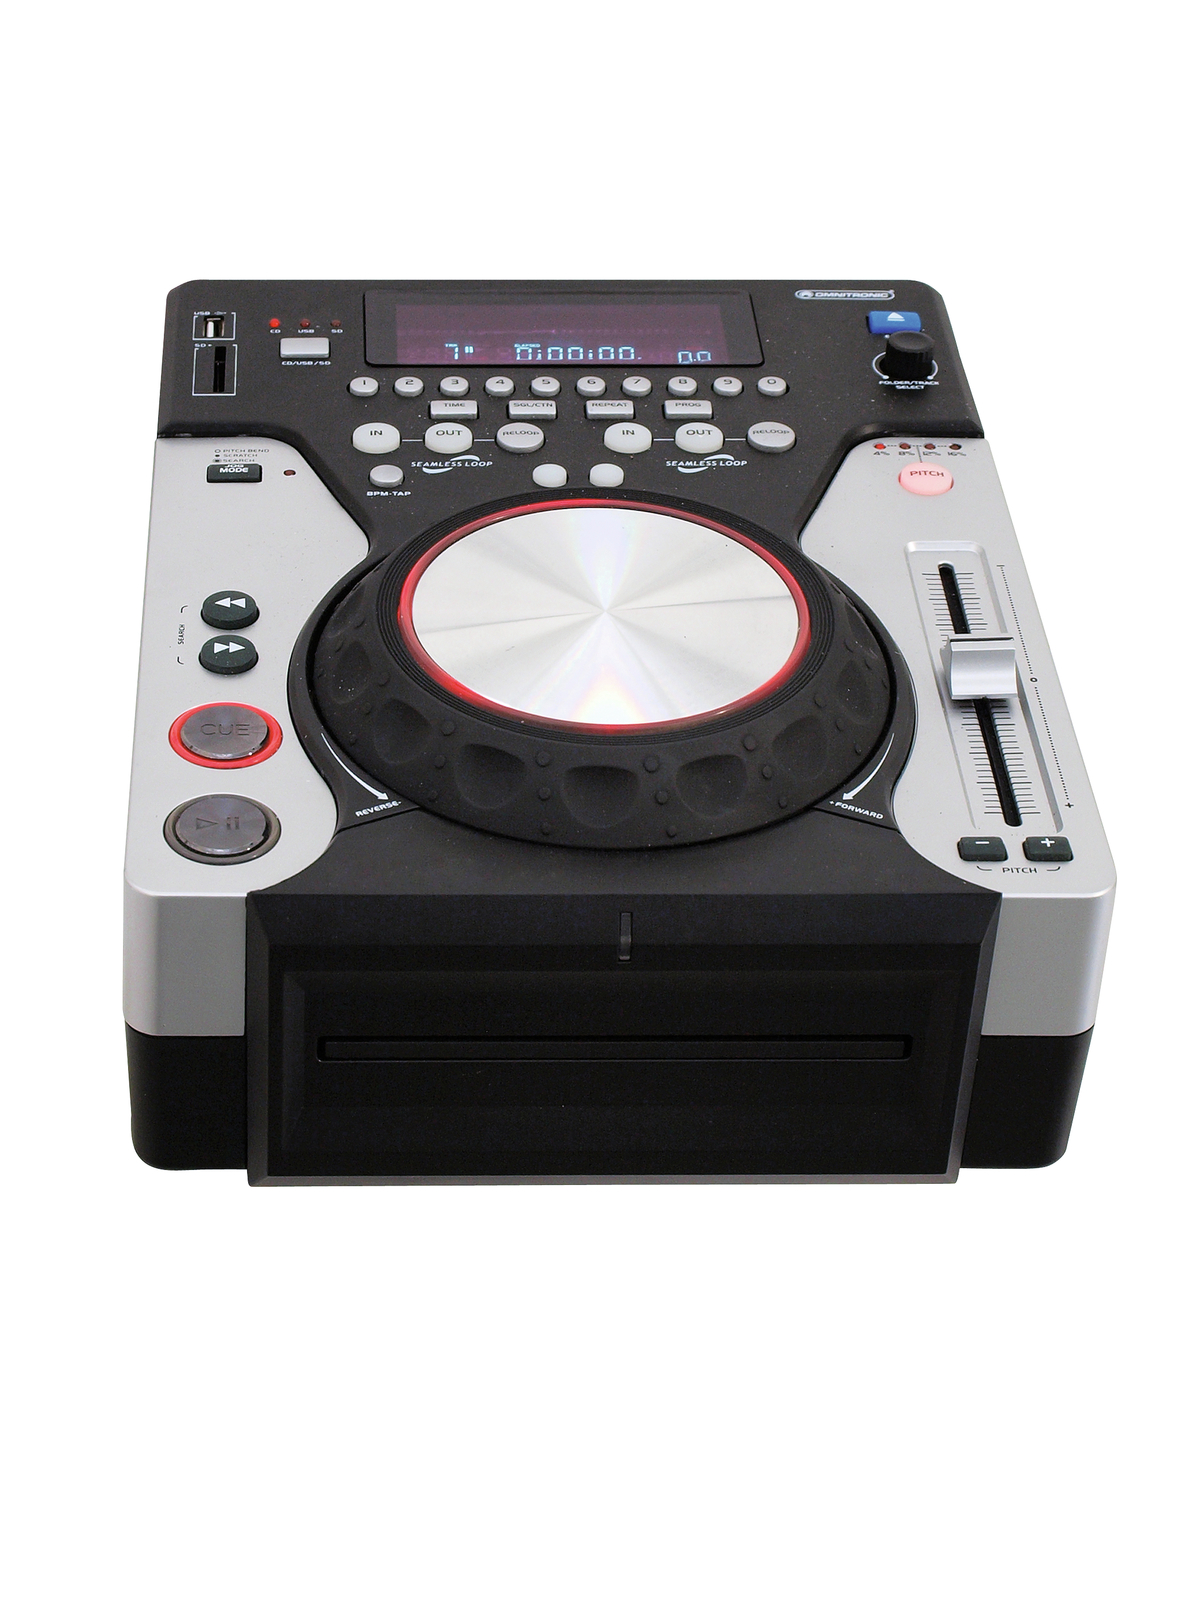 achat vente espace dj omnitronic xmt 1400 lecteur cd usb sd rockstation. Black Bedroom Furniture Sets. Home Design Ideas